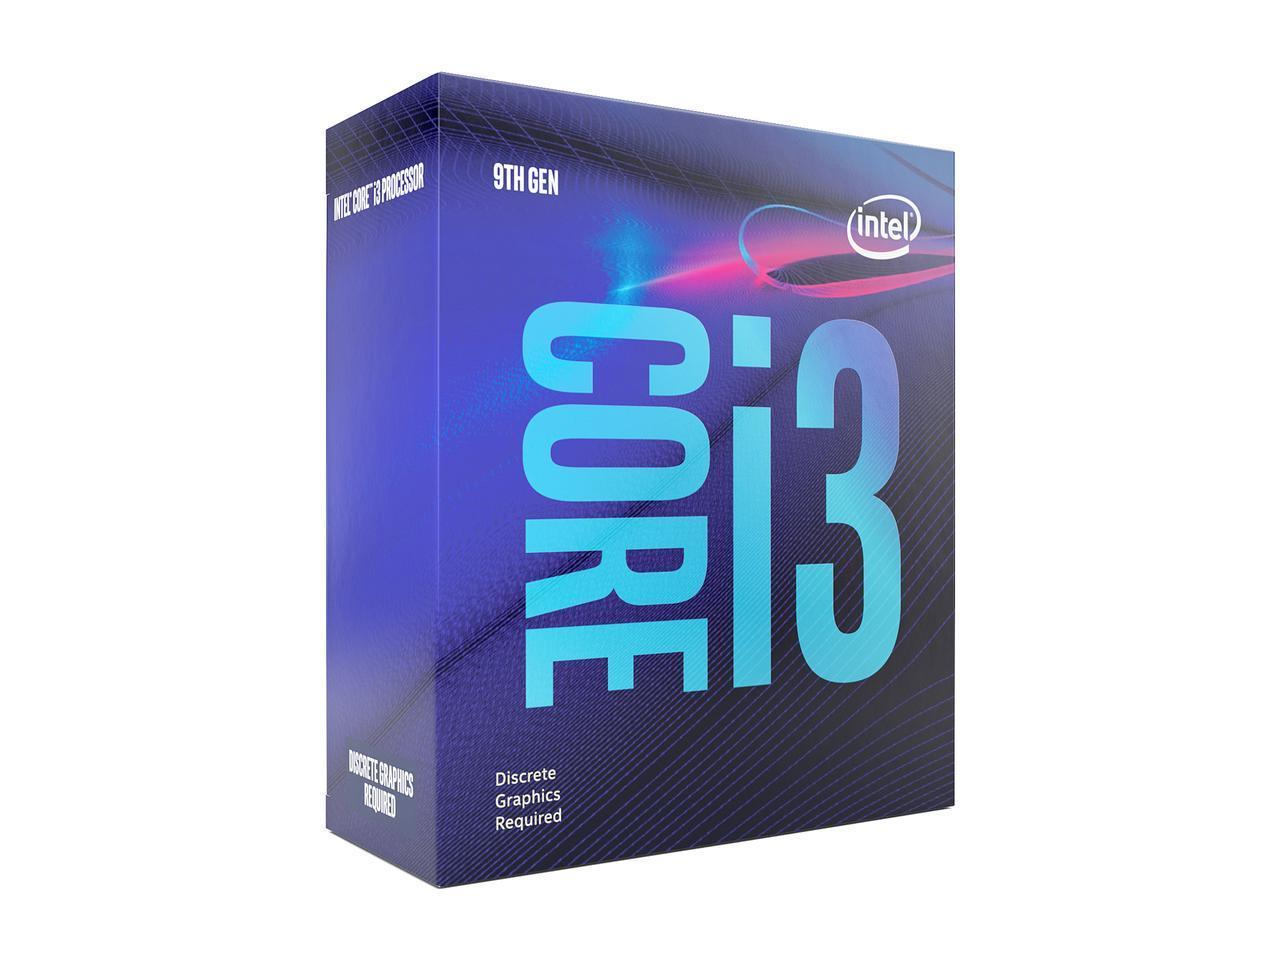 Процесор Intel Coffee Lake Core i3-9100F 3.60GHz (up to 4.20GHz ), 6MB, 65W LGA1151 (300 Series)-2